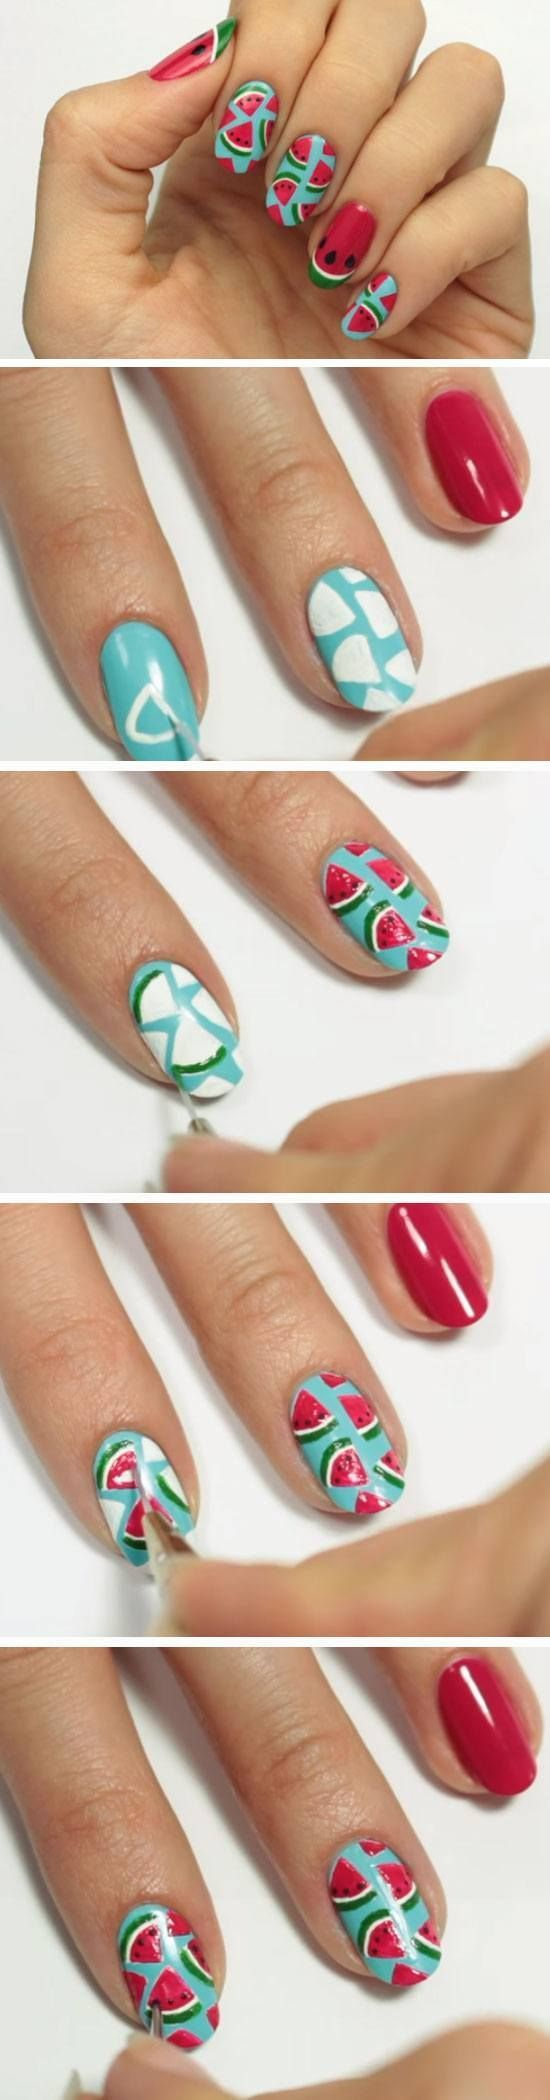 122 best Nail Art images on Pinterest | Summer nails, Paint and ...